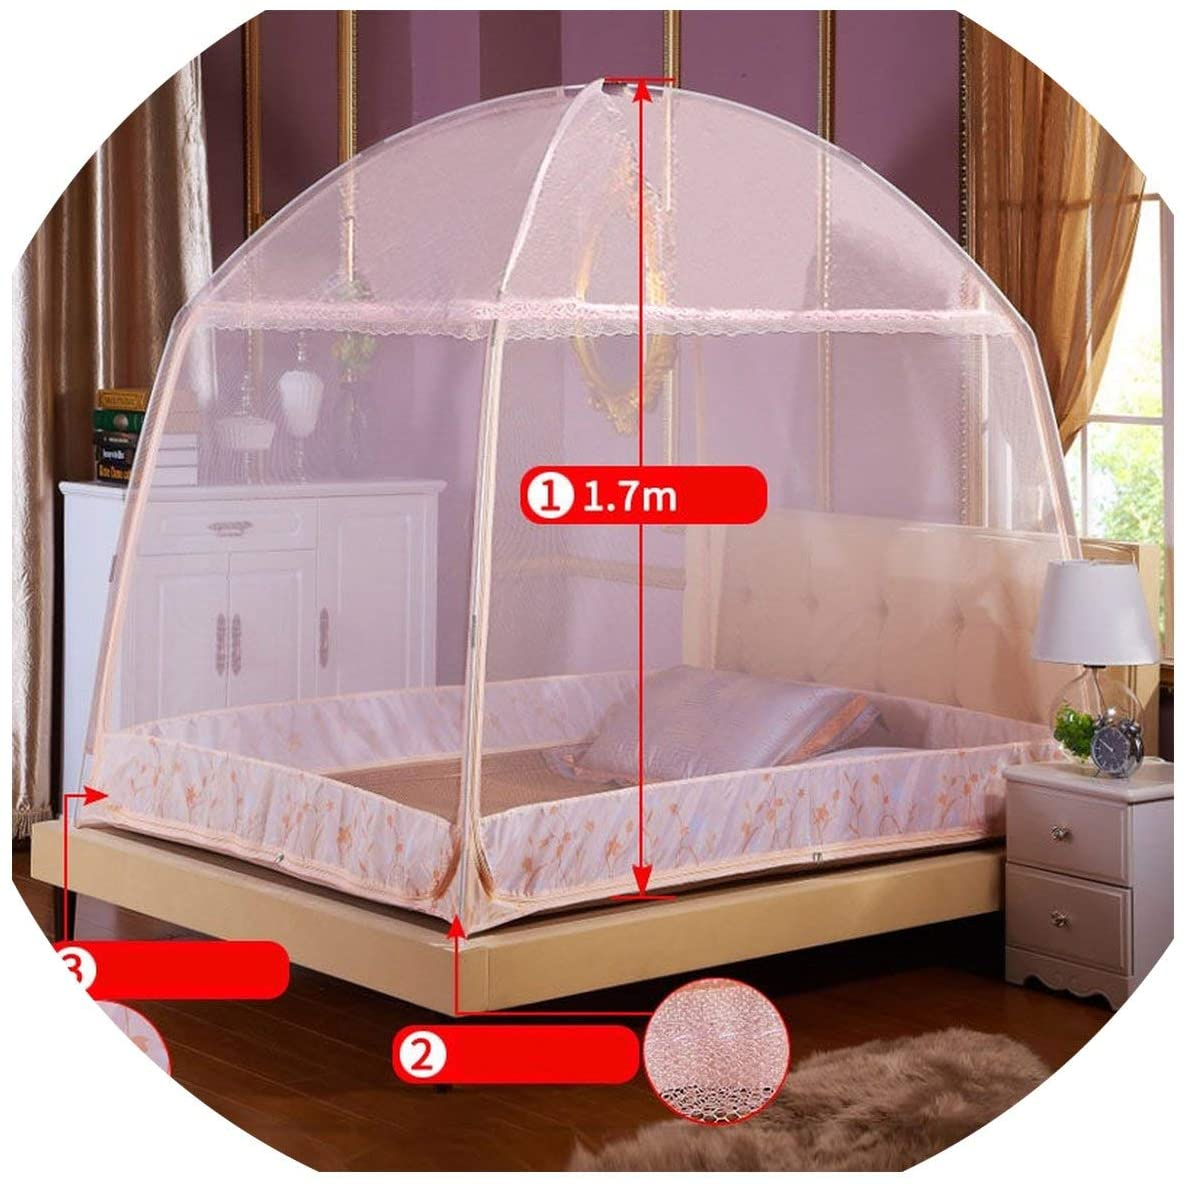 OH WHY Portable Folding Mosquito Net Summer Yurt Net for Single Double Bed 5 Colors Mesh Netting Tent for Adults Mosquiteiro Canopy Net,Jade Pink,1.8x2.2m Bed